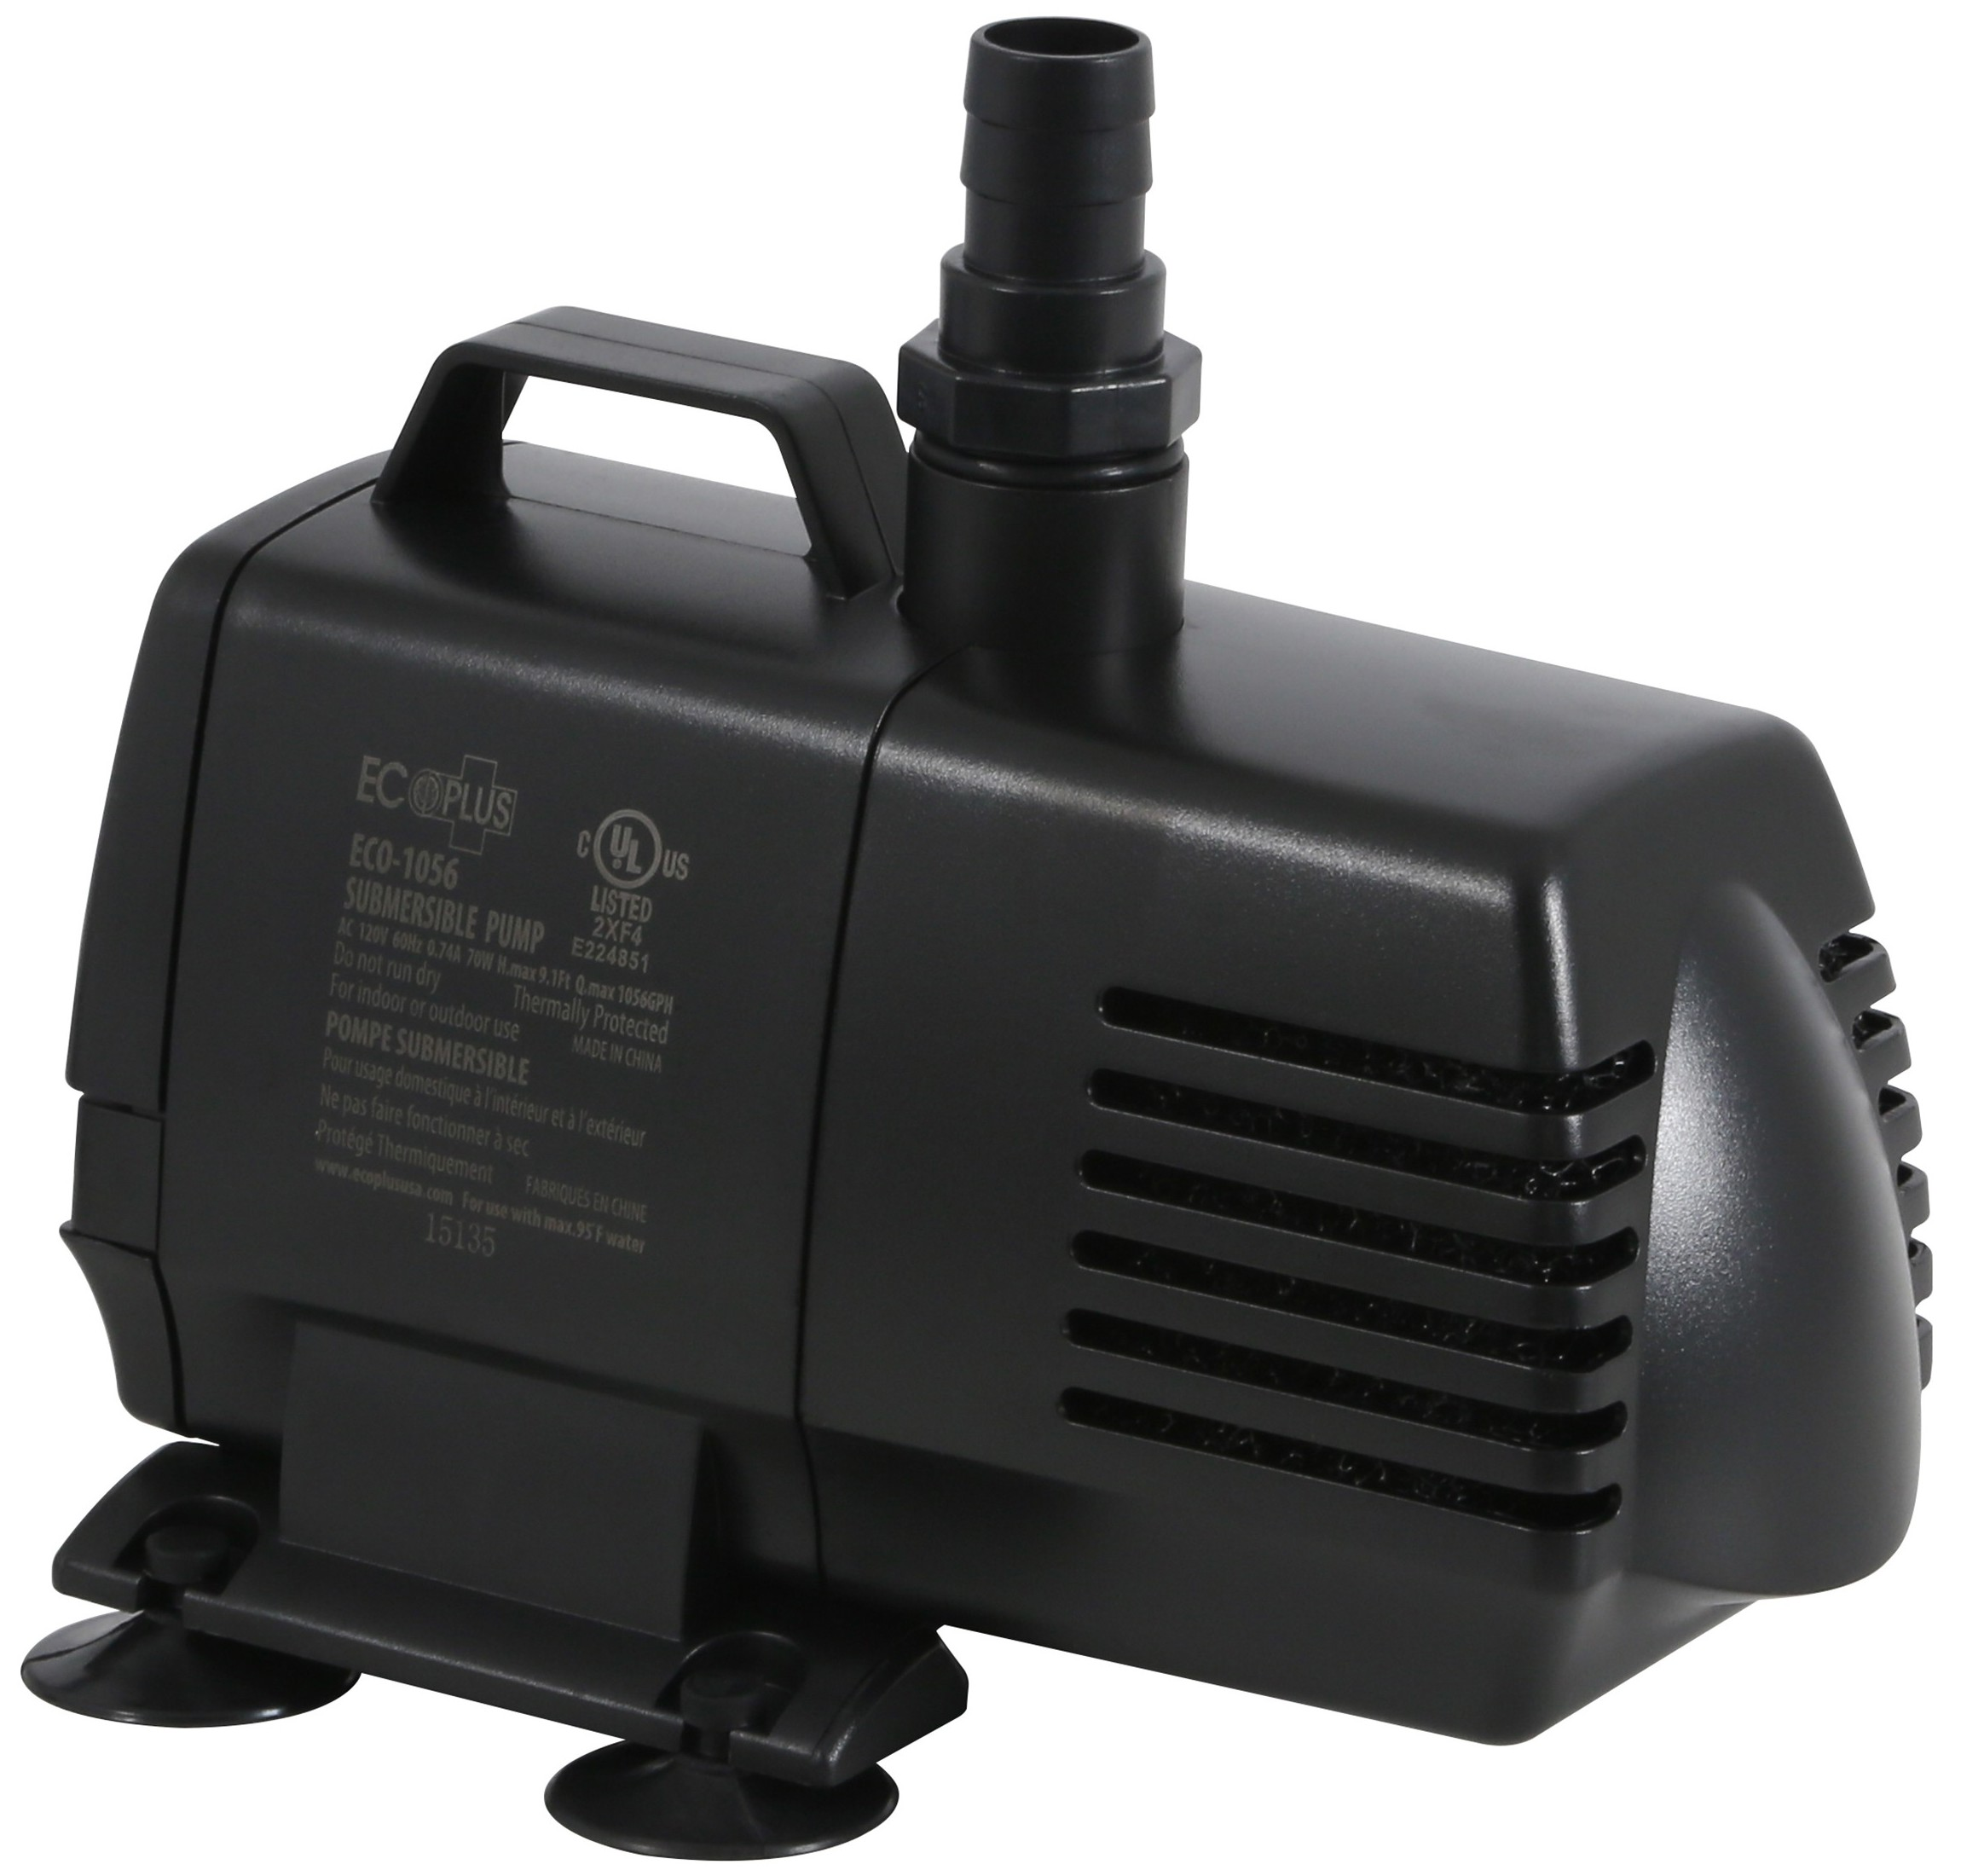 Ecoplus 1056 submersible pump 1083 gph for Inline hydroponic pump